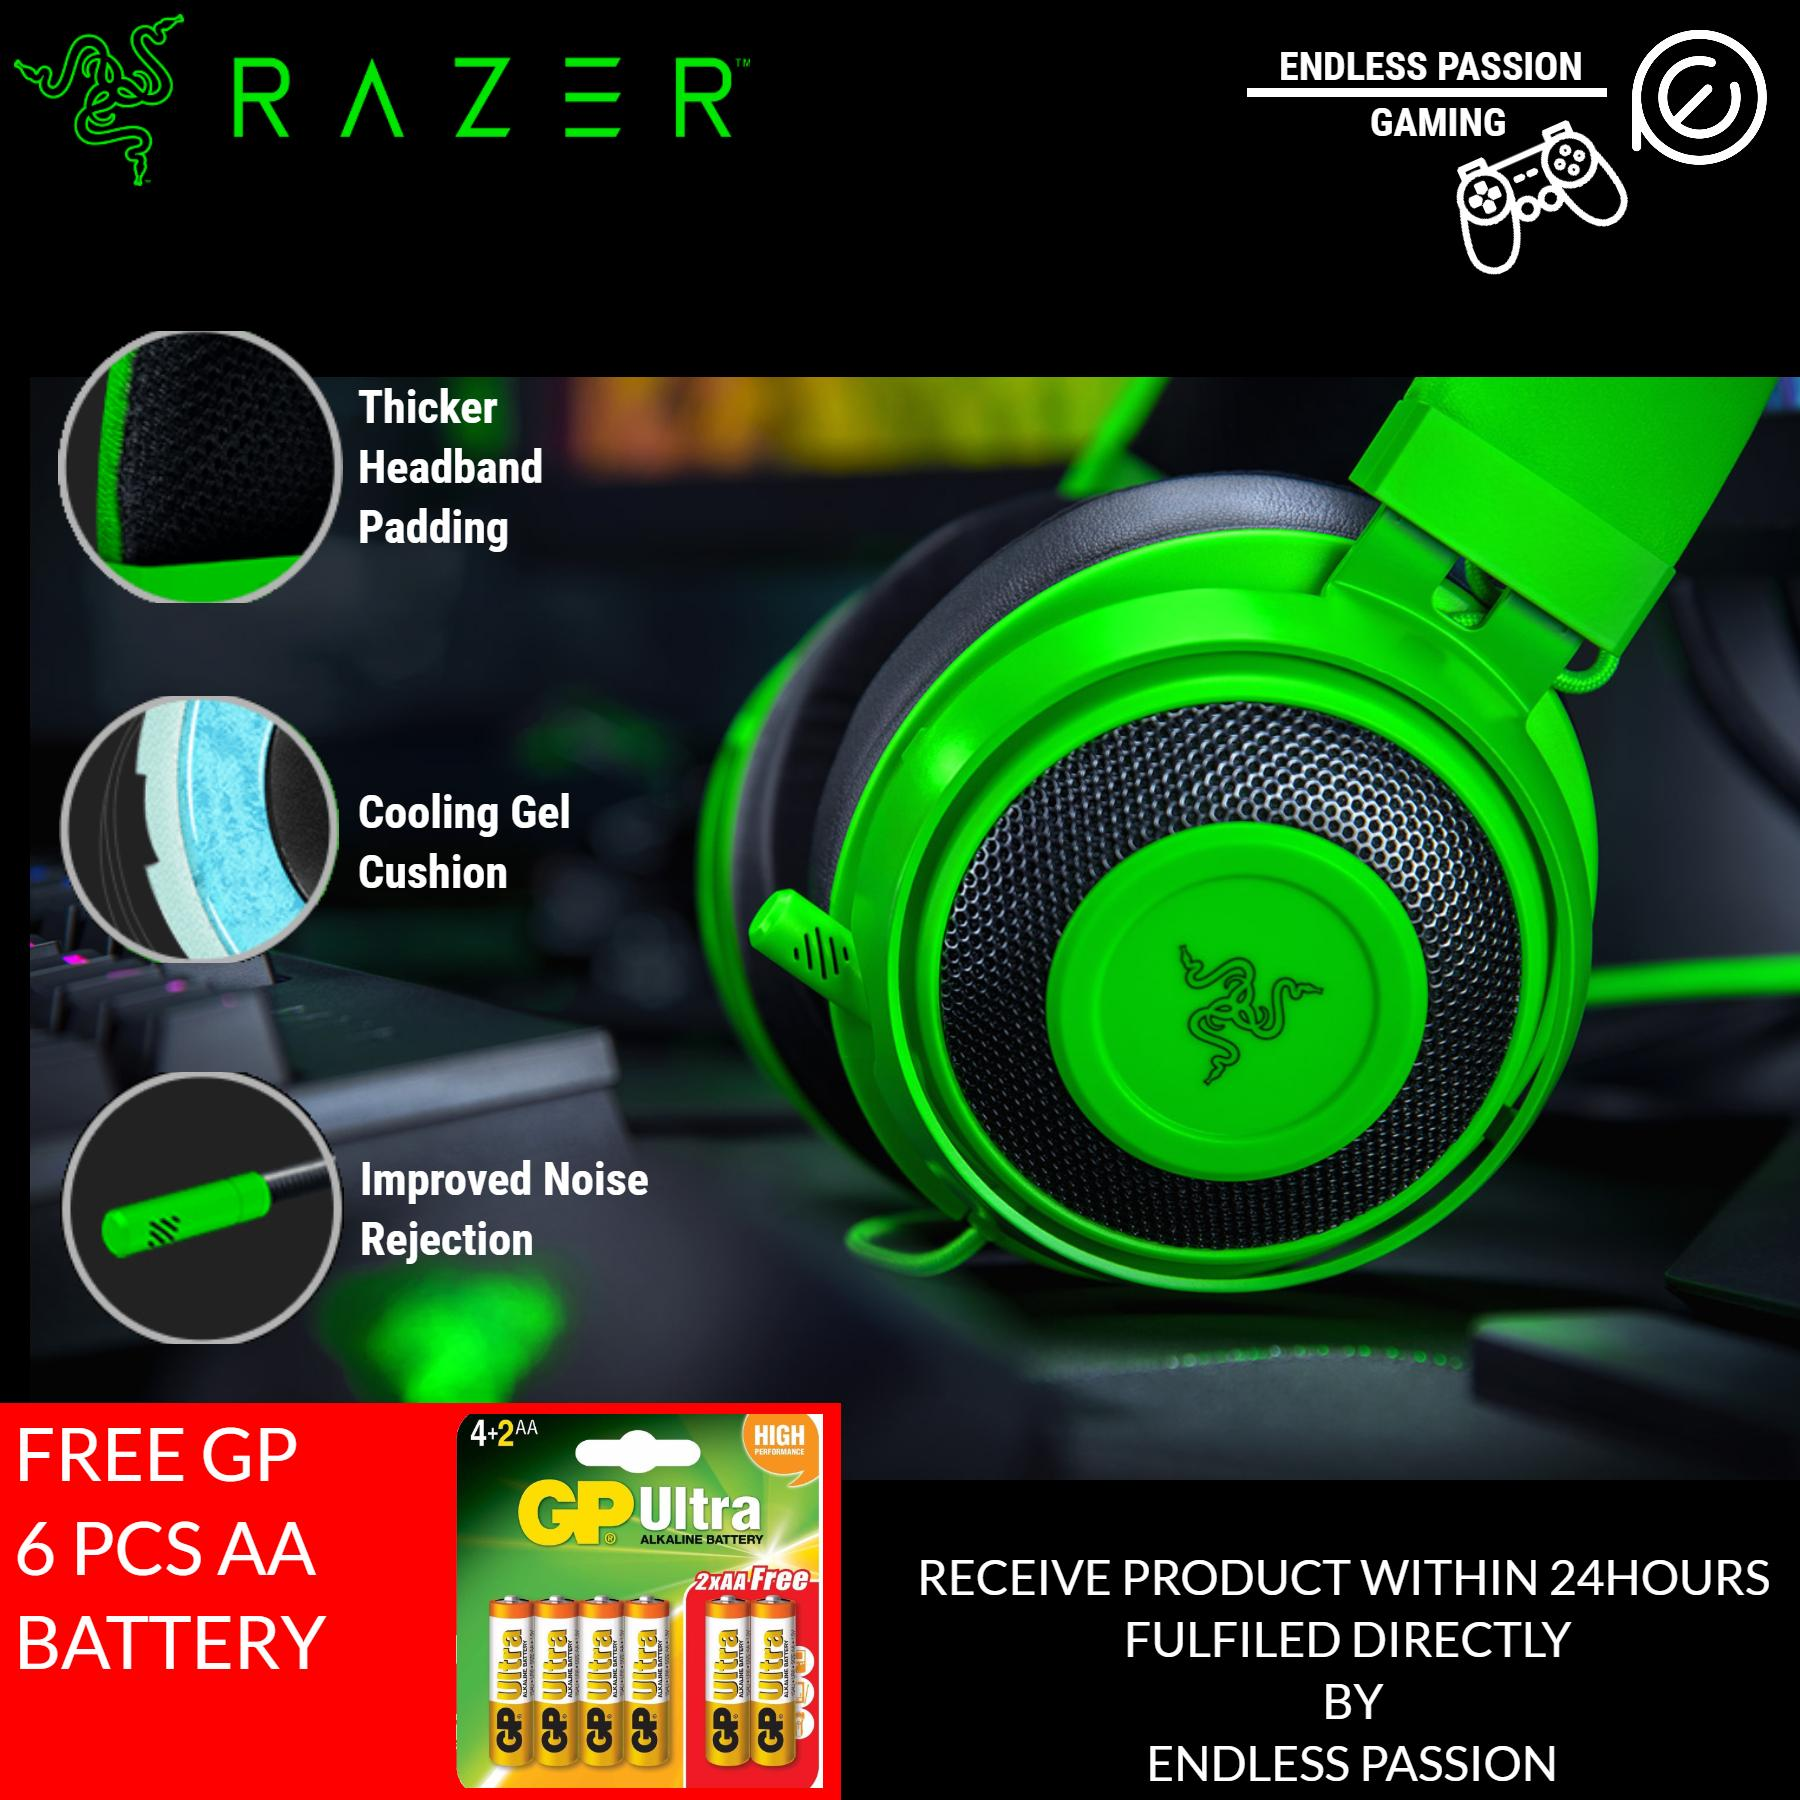 Razer Kraken Wired Gaming Headset 2019 - Lightweight Aluminum Frame, Retractable Noise Cancelling Mic, for PC, Xbox, PS4, Nintendo Switch